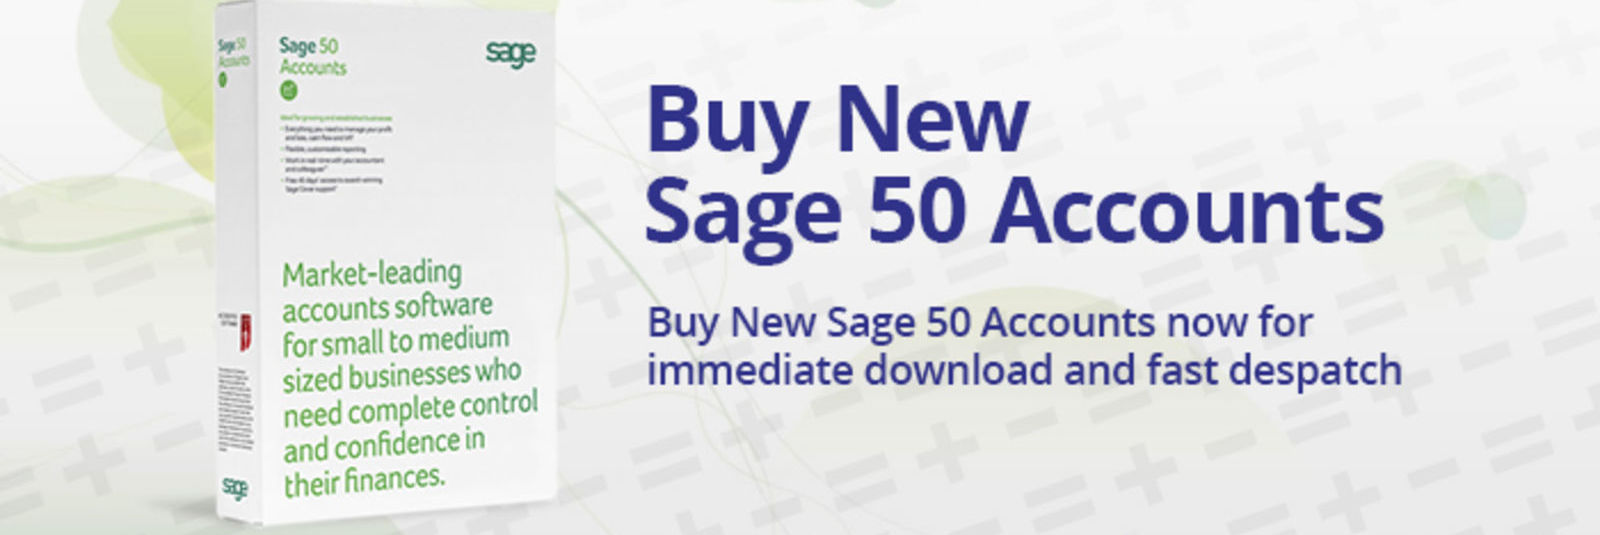 Buy Sage 50 Accounts 2015 - The best prices on the web